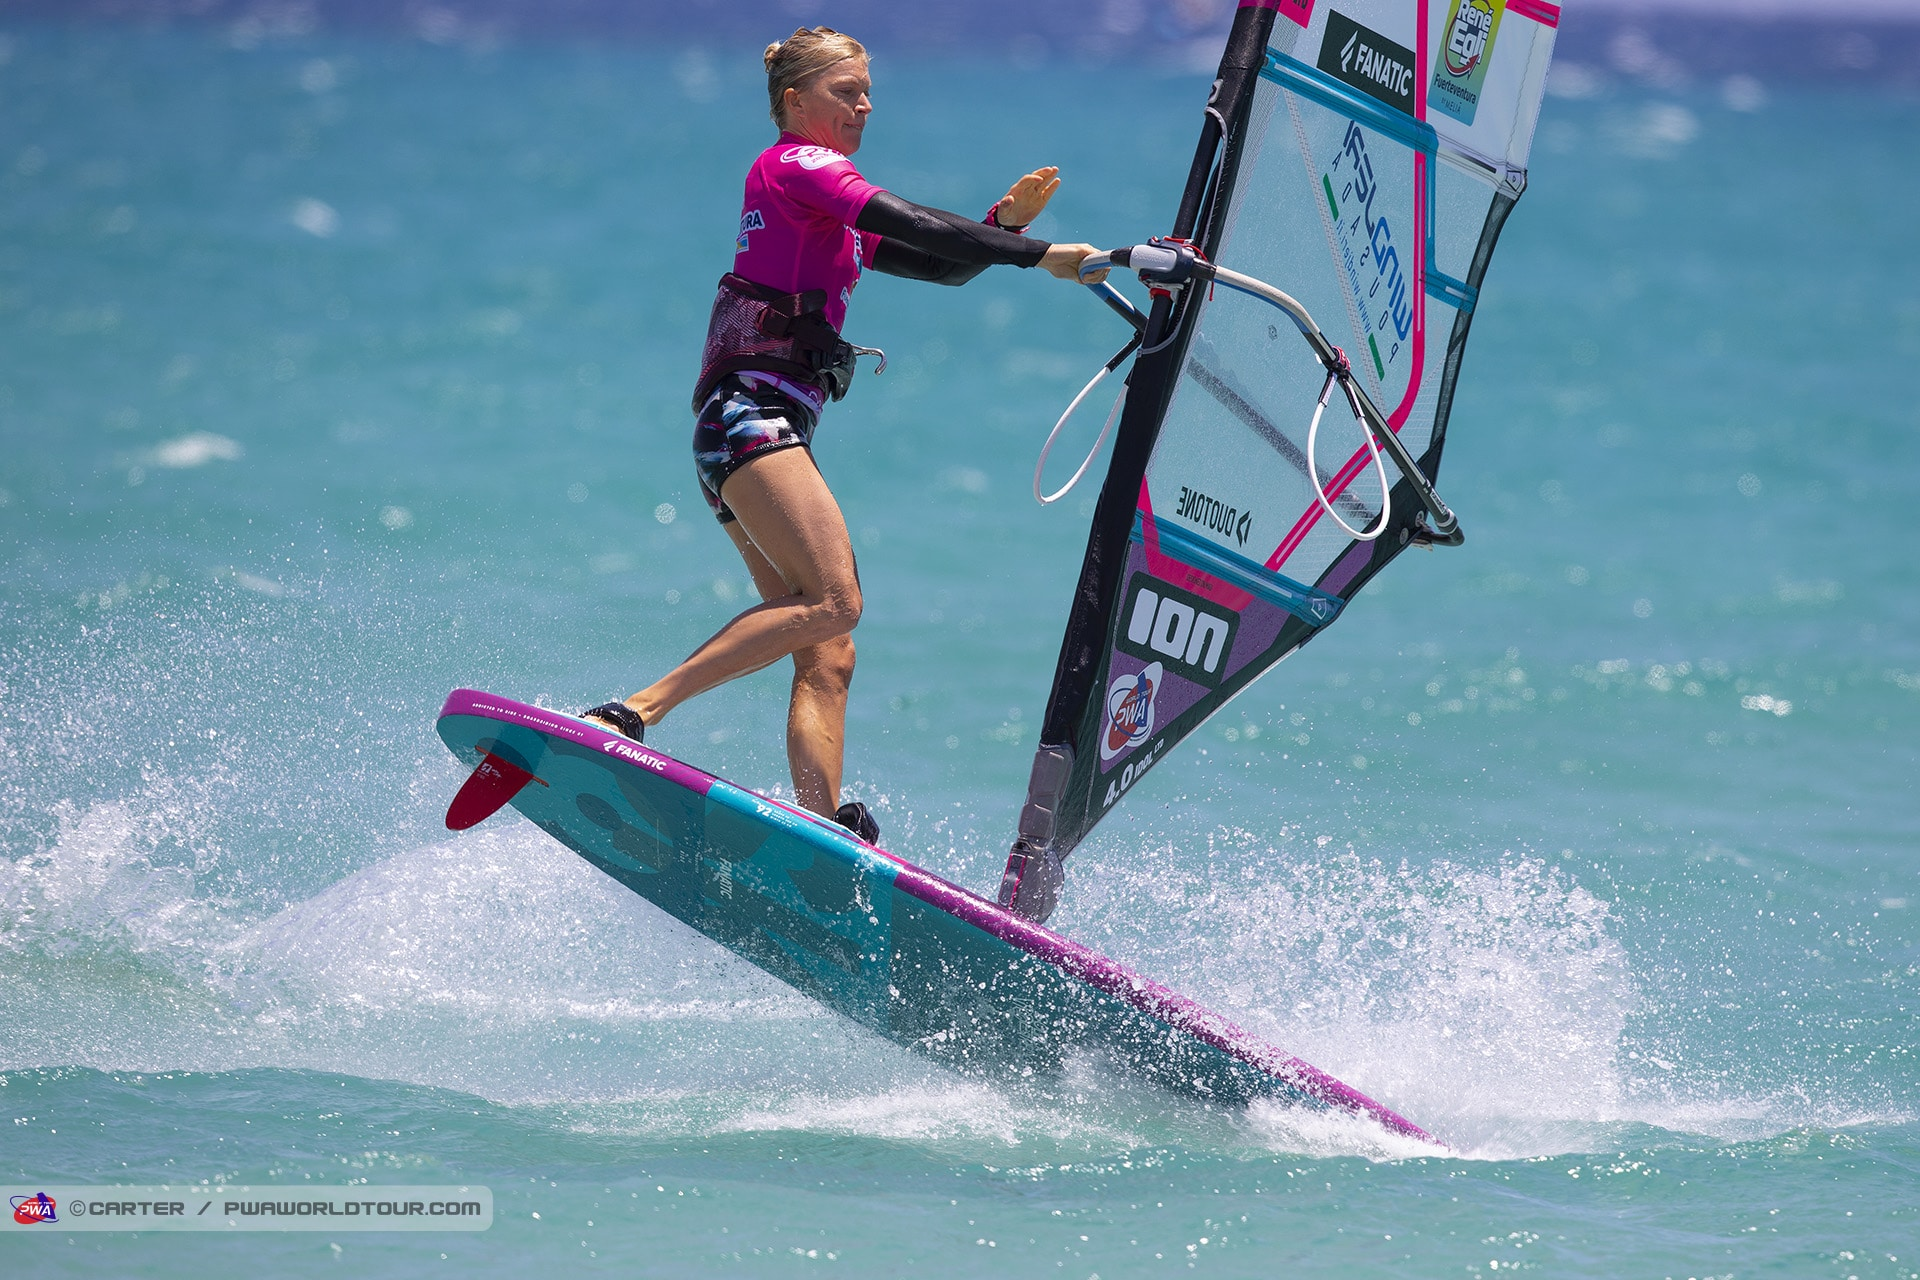 Arrianne Aukes is happy that future windsurfing girls will feel equal to men (Photo: Carter/PWA)